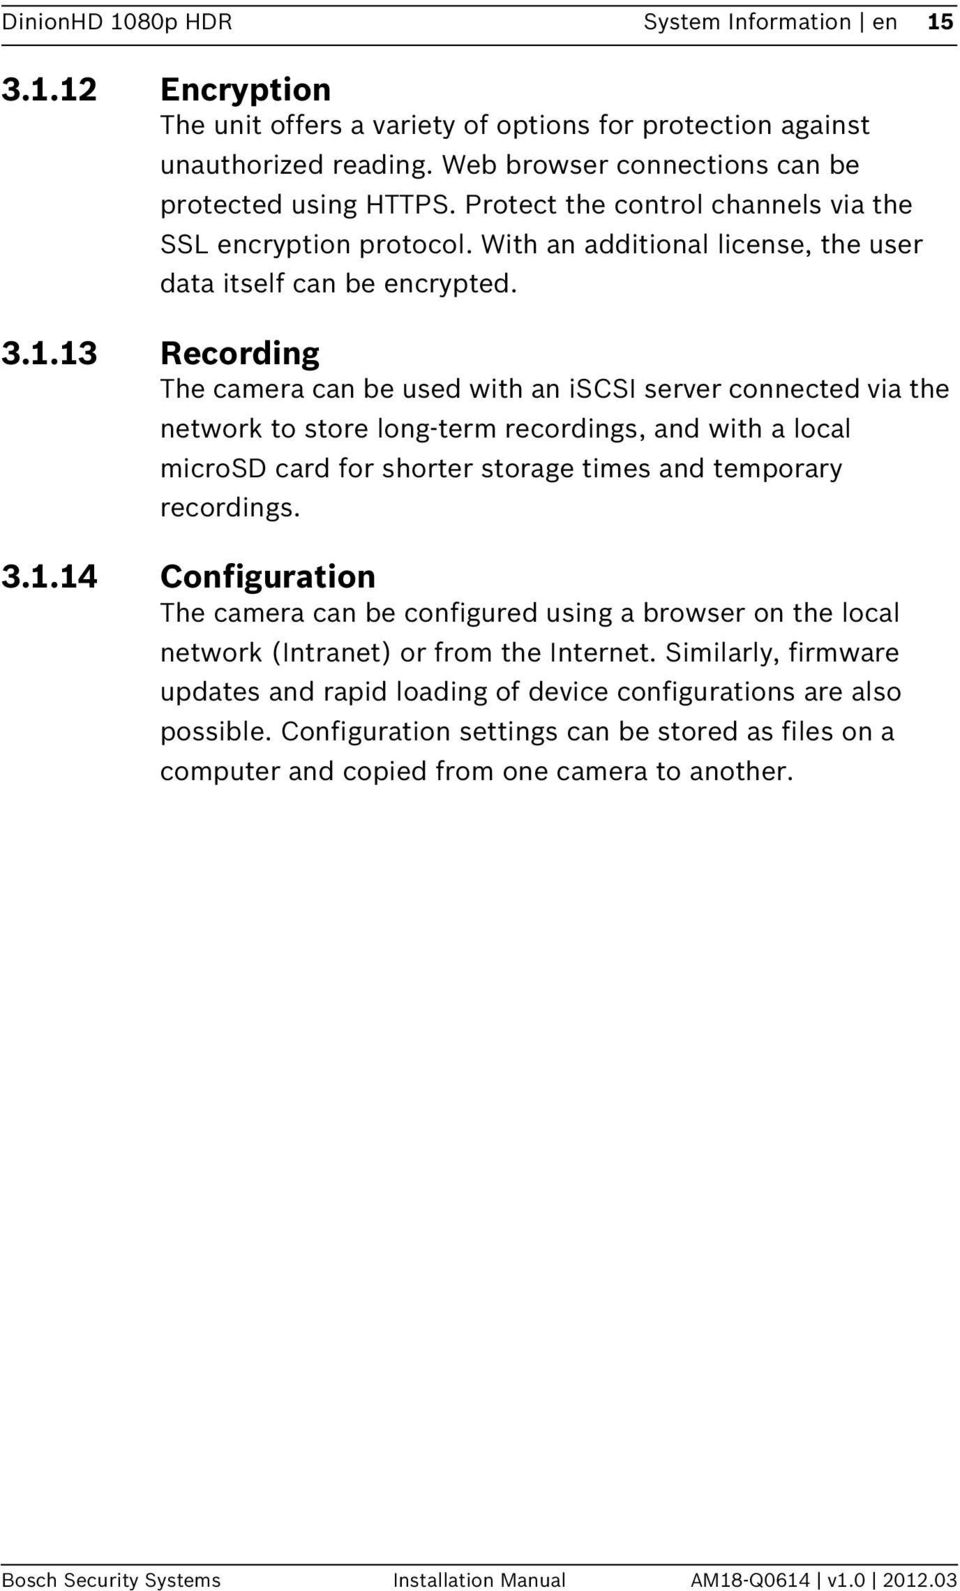 13 Recording The camera can be used with an iscsi server connected via the network to store long-term recordings, and with a local microsd card for shorter storage times and temporary recordings. 3.1.14 Configuration The camera can be configured using a browser on the local network (Intranet) or from the Internet.